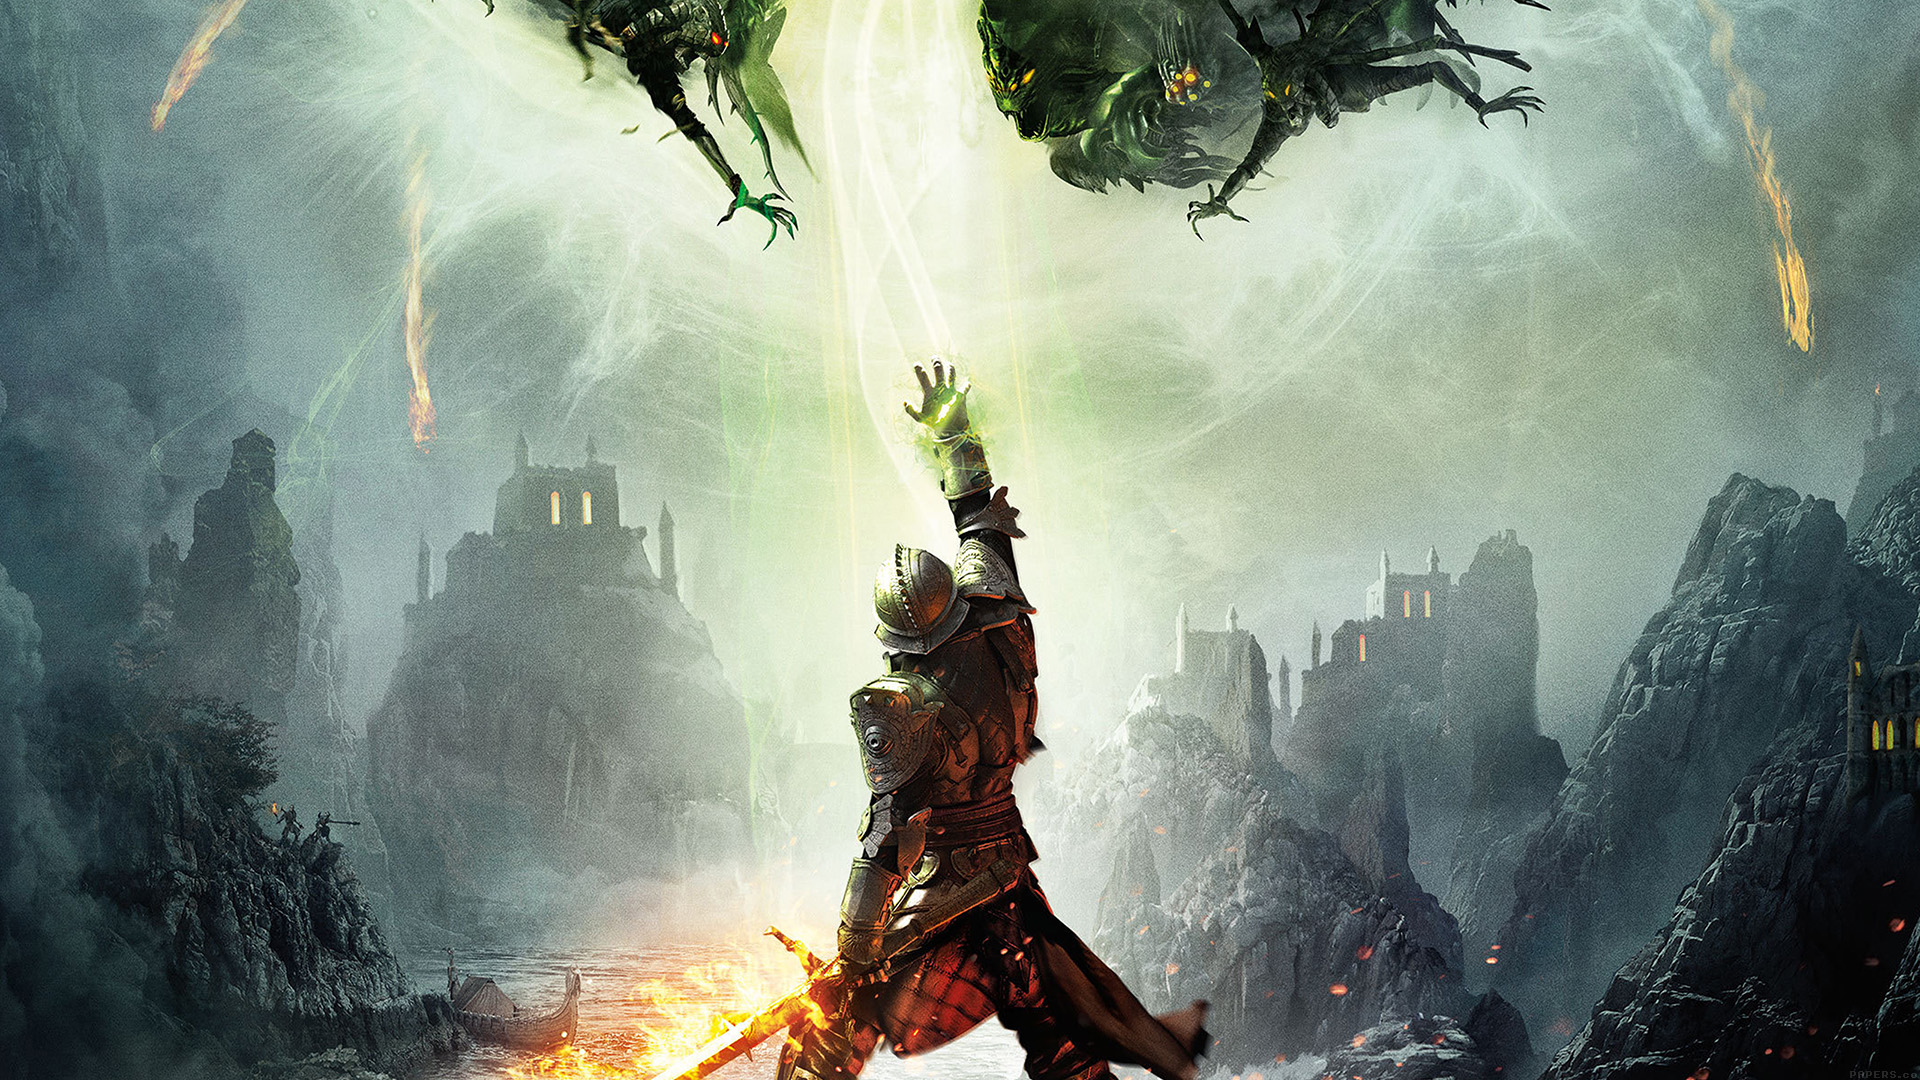 Cool Cute Wallpaper For Iphone Ah66 Dragon Age Inquisition Game Illust Art Electronic